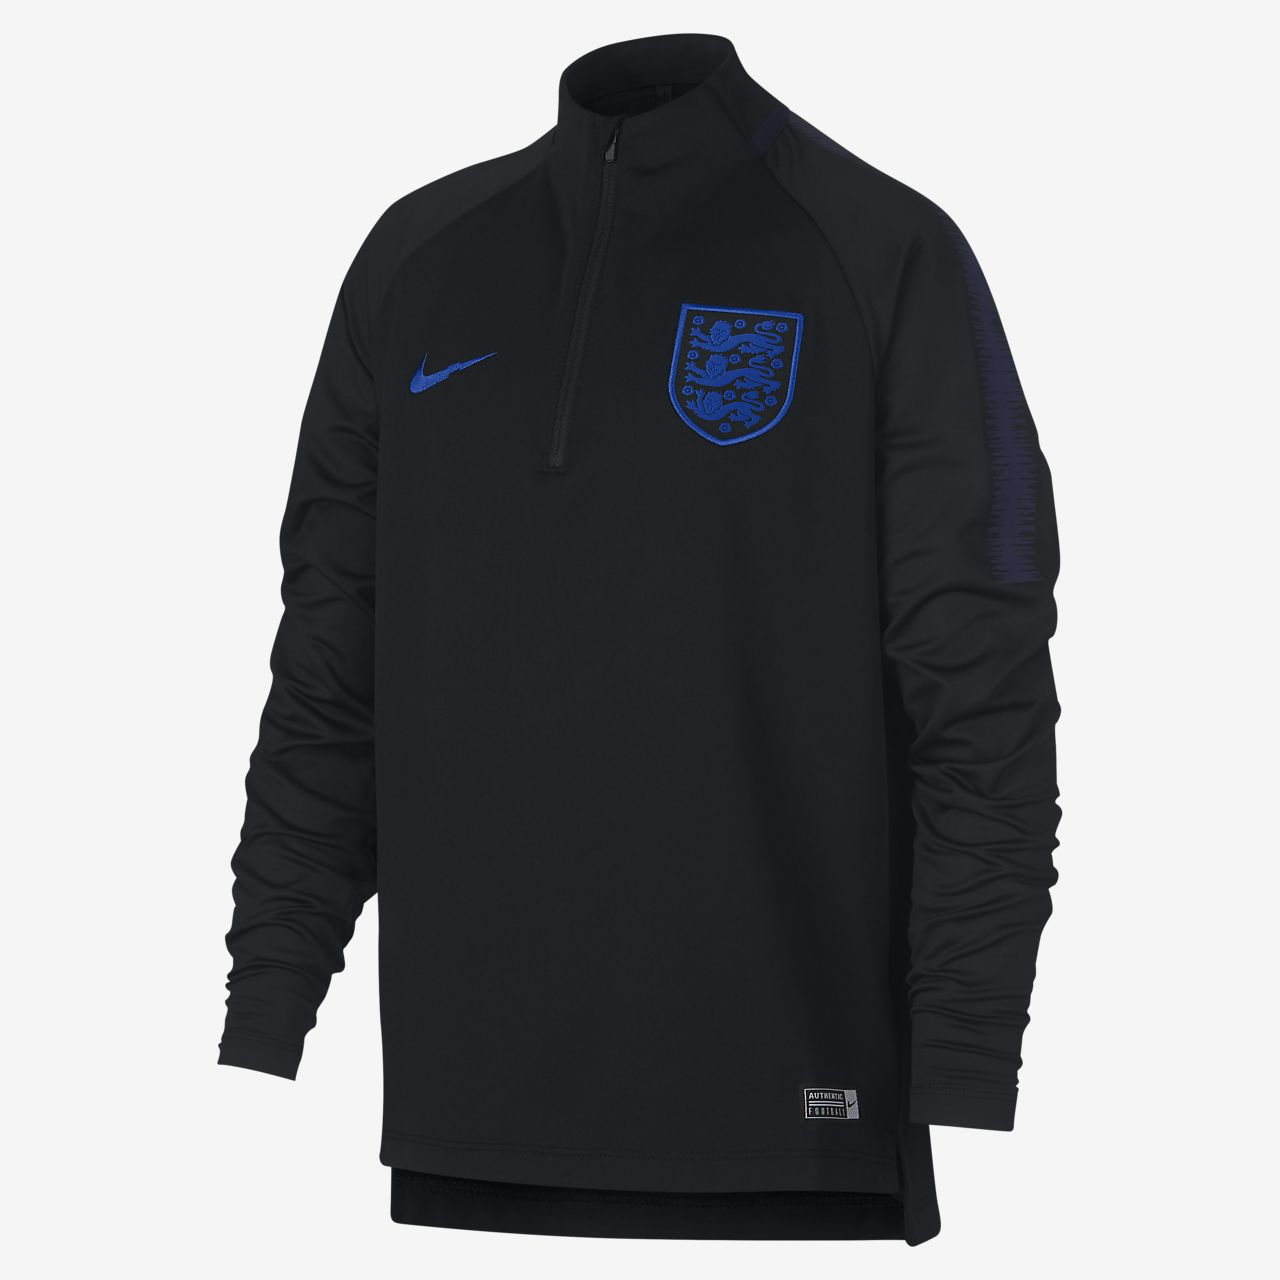 England Dri-FIT Squad Drill Older Kids' Long-Sleeve Football Top